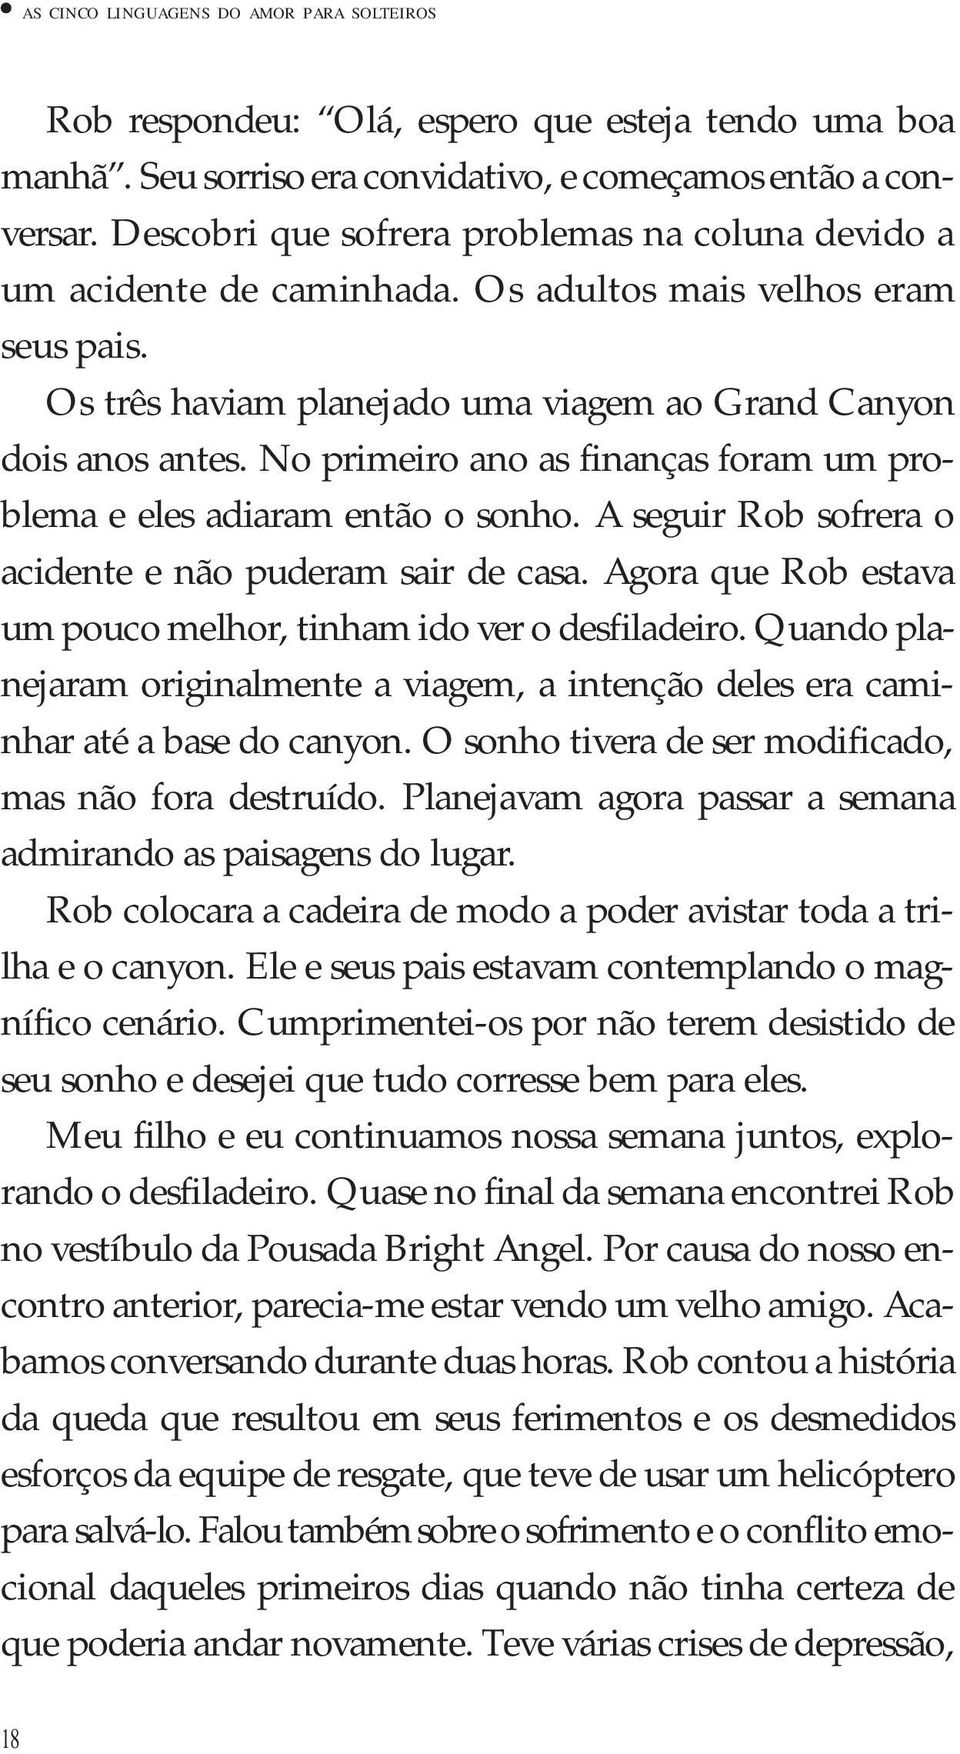 As Cinco Linguagens Do Amor Para Solteiros Pdf